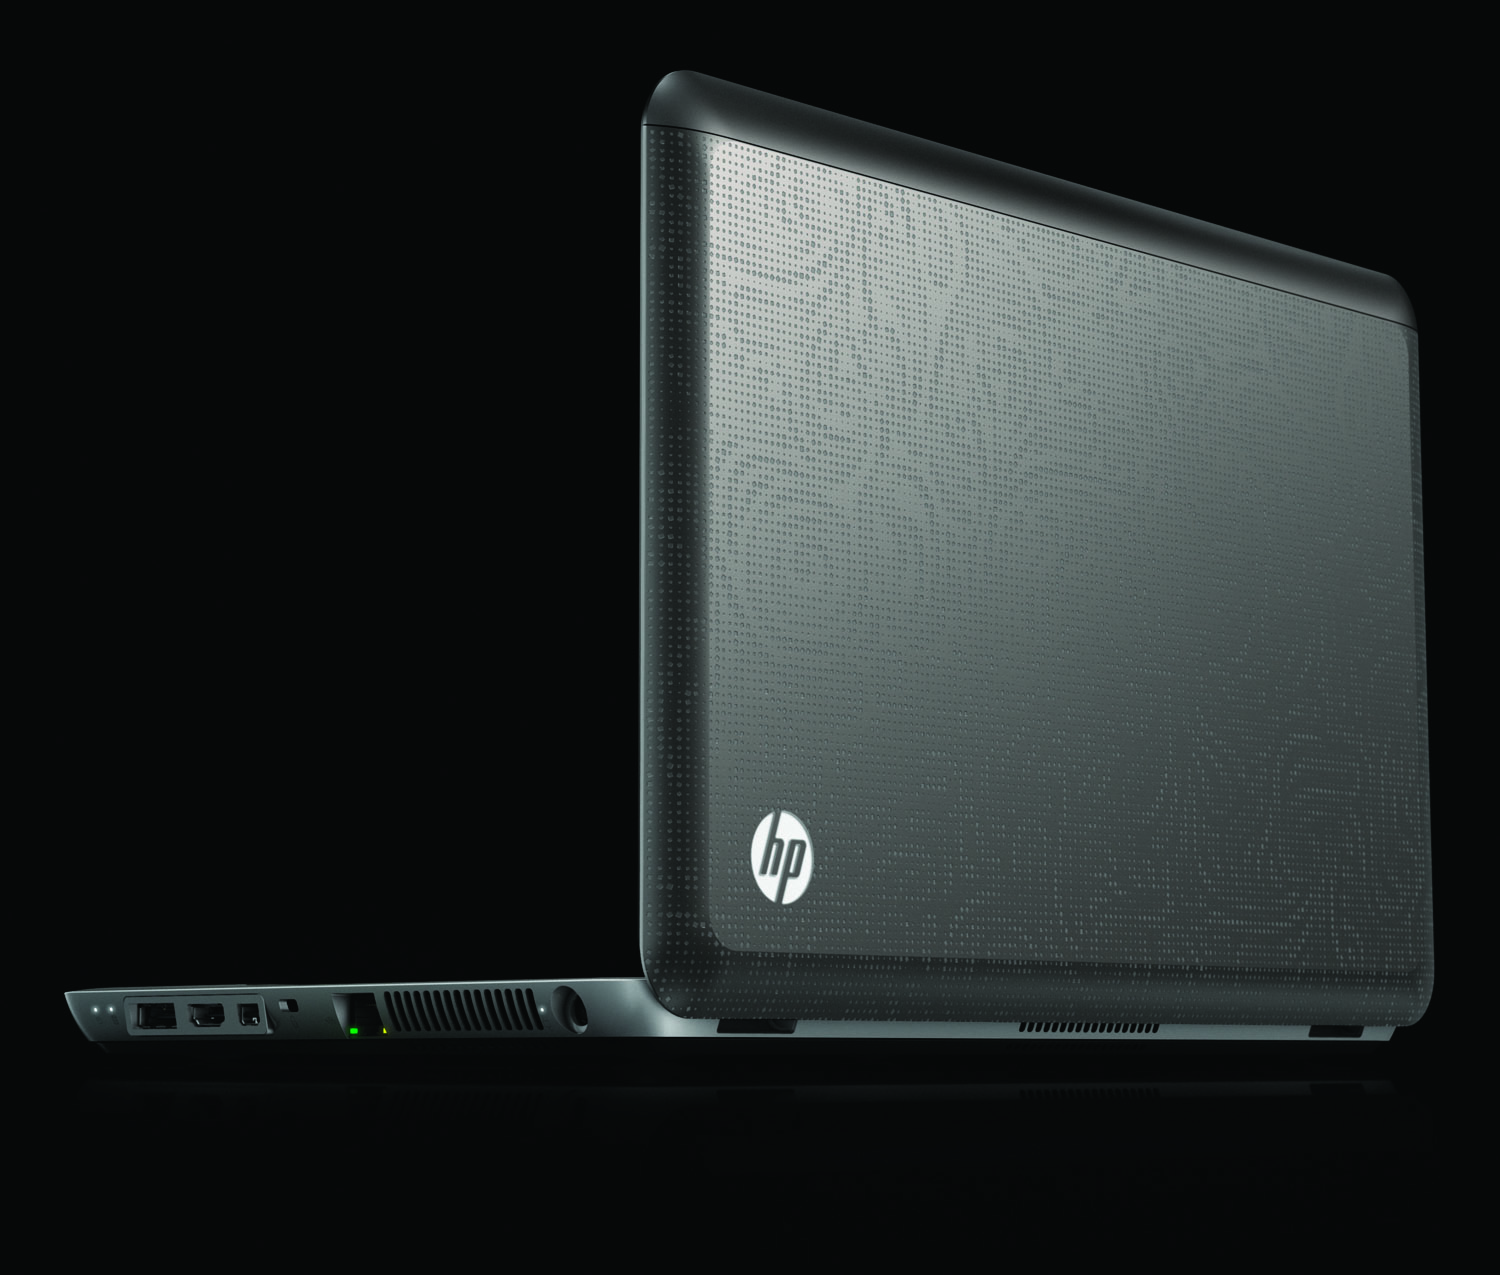 HP Envy 14, rear left back on black